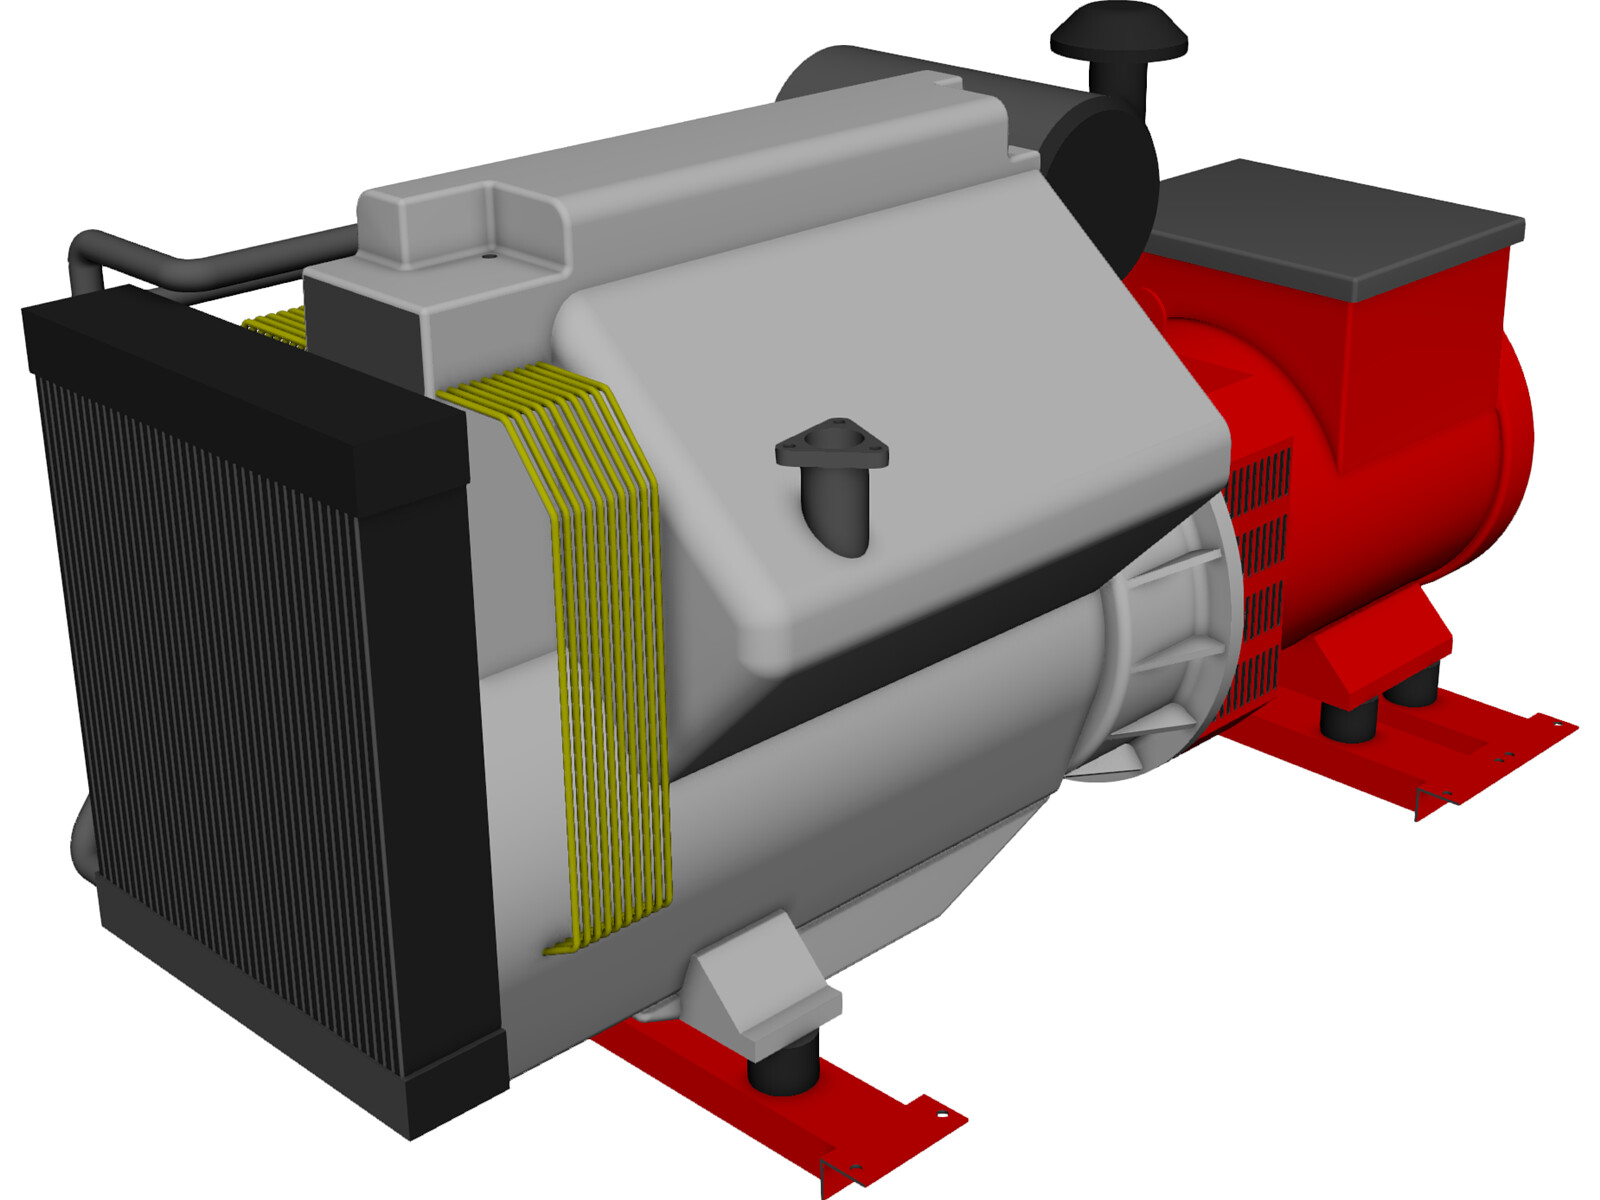 Diesel Generator 3d Cad Model 3d Cad Browser